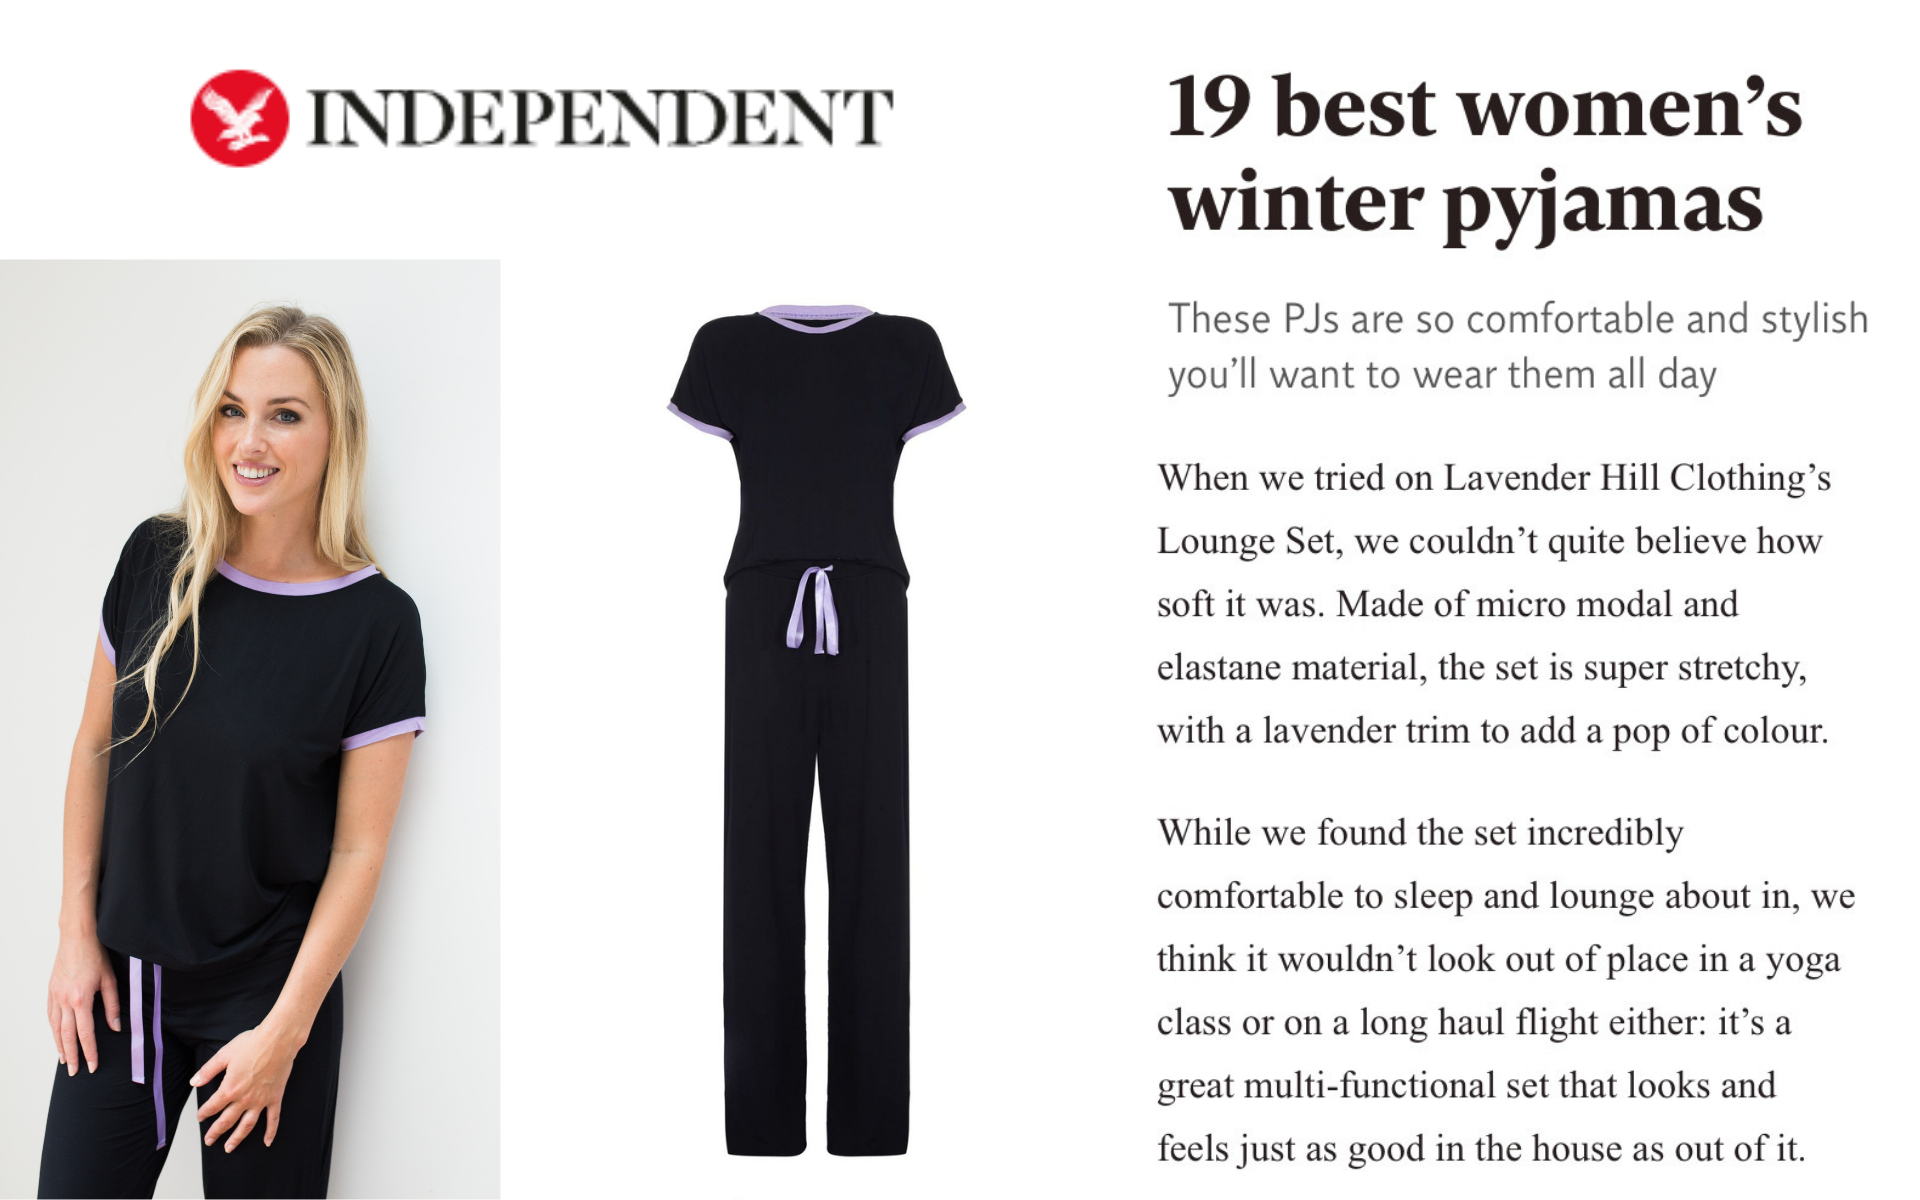 Women's best pyajamas